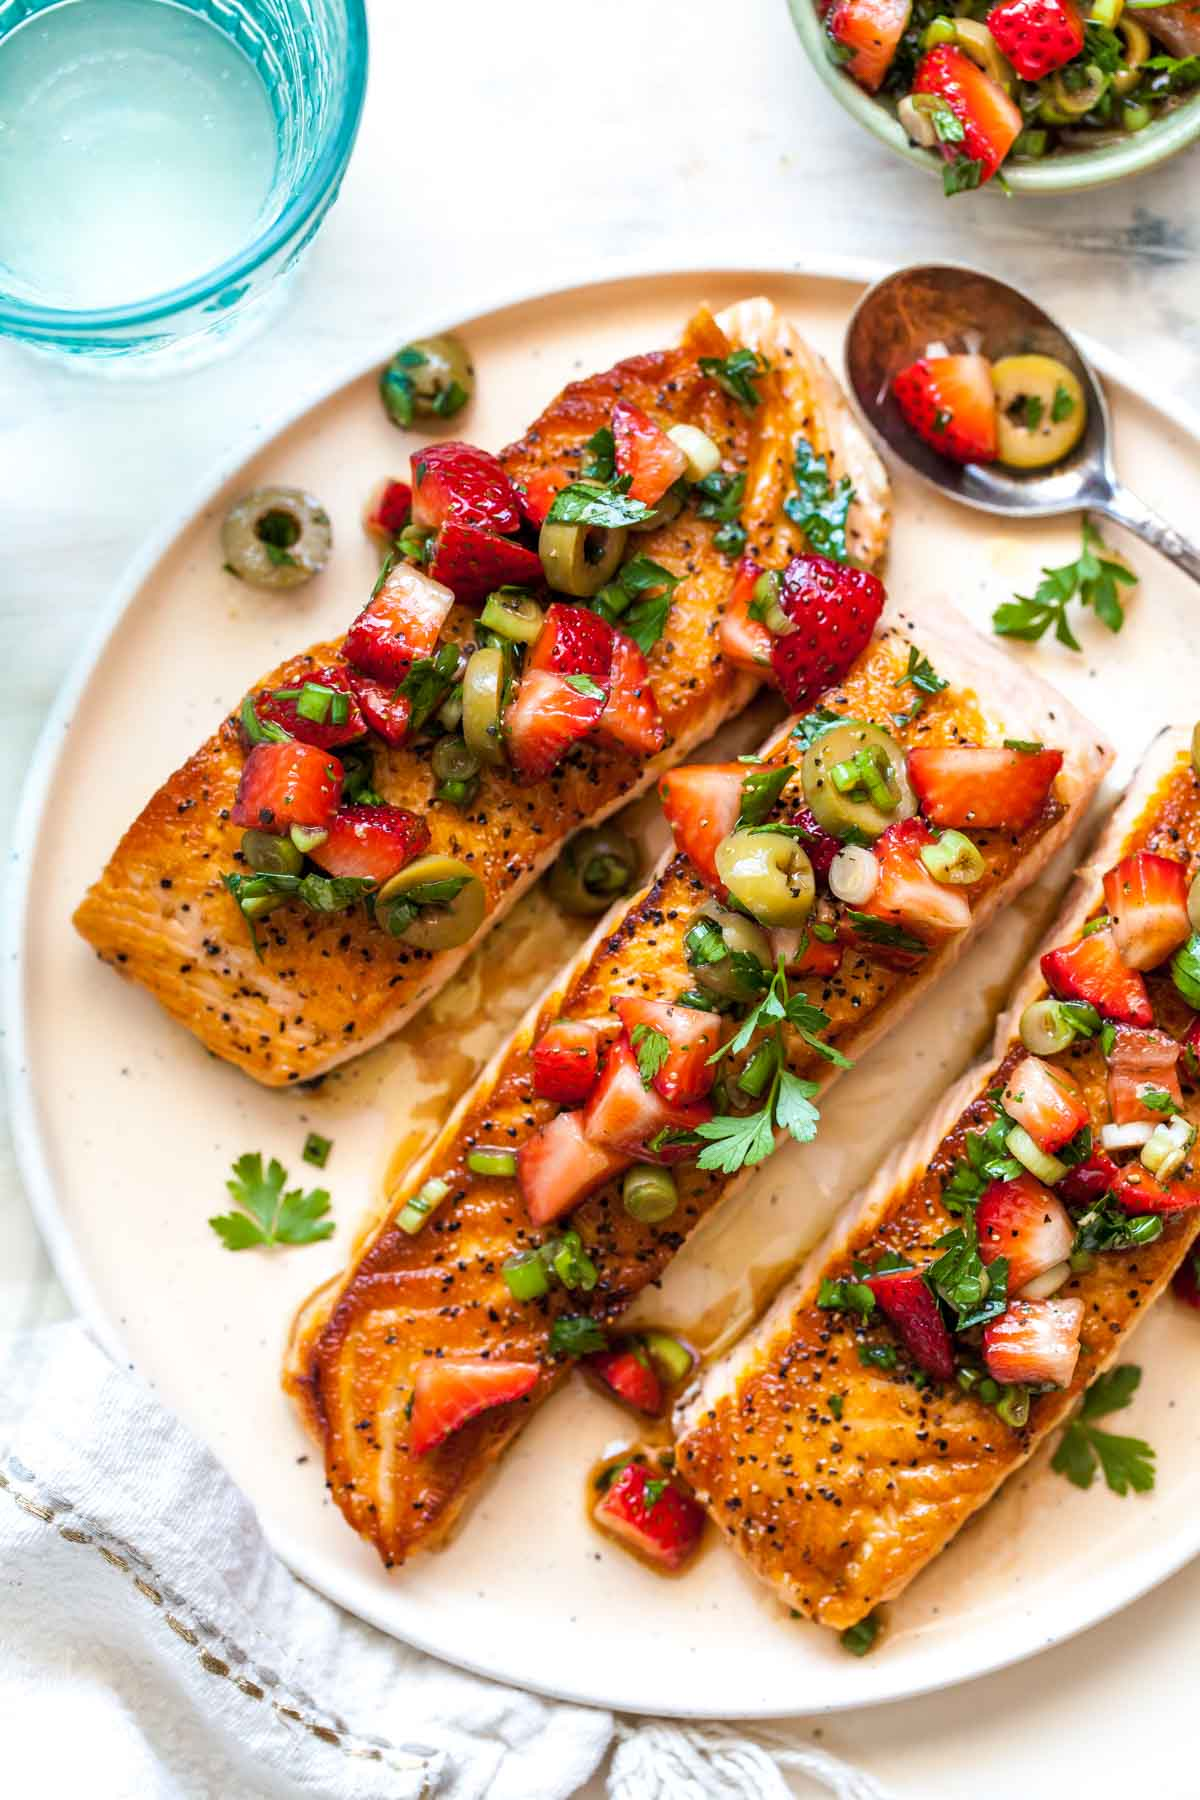 Three salmon fillets on a plate topped with strawberry-olive tapenade